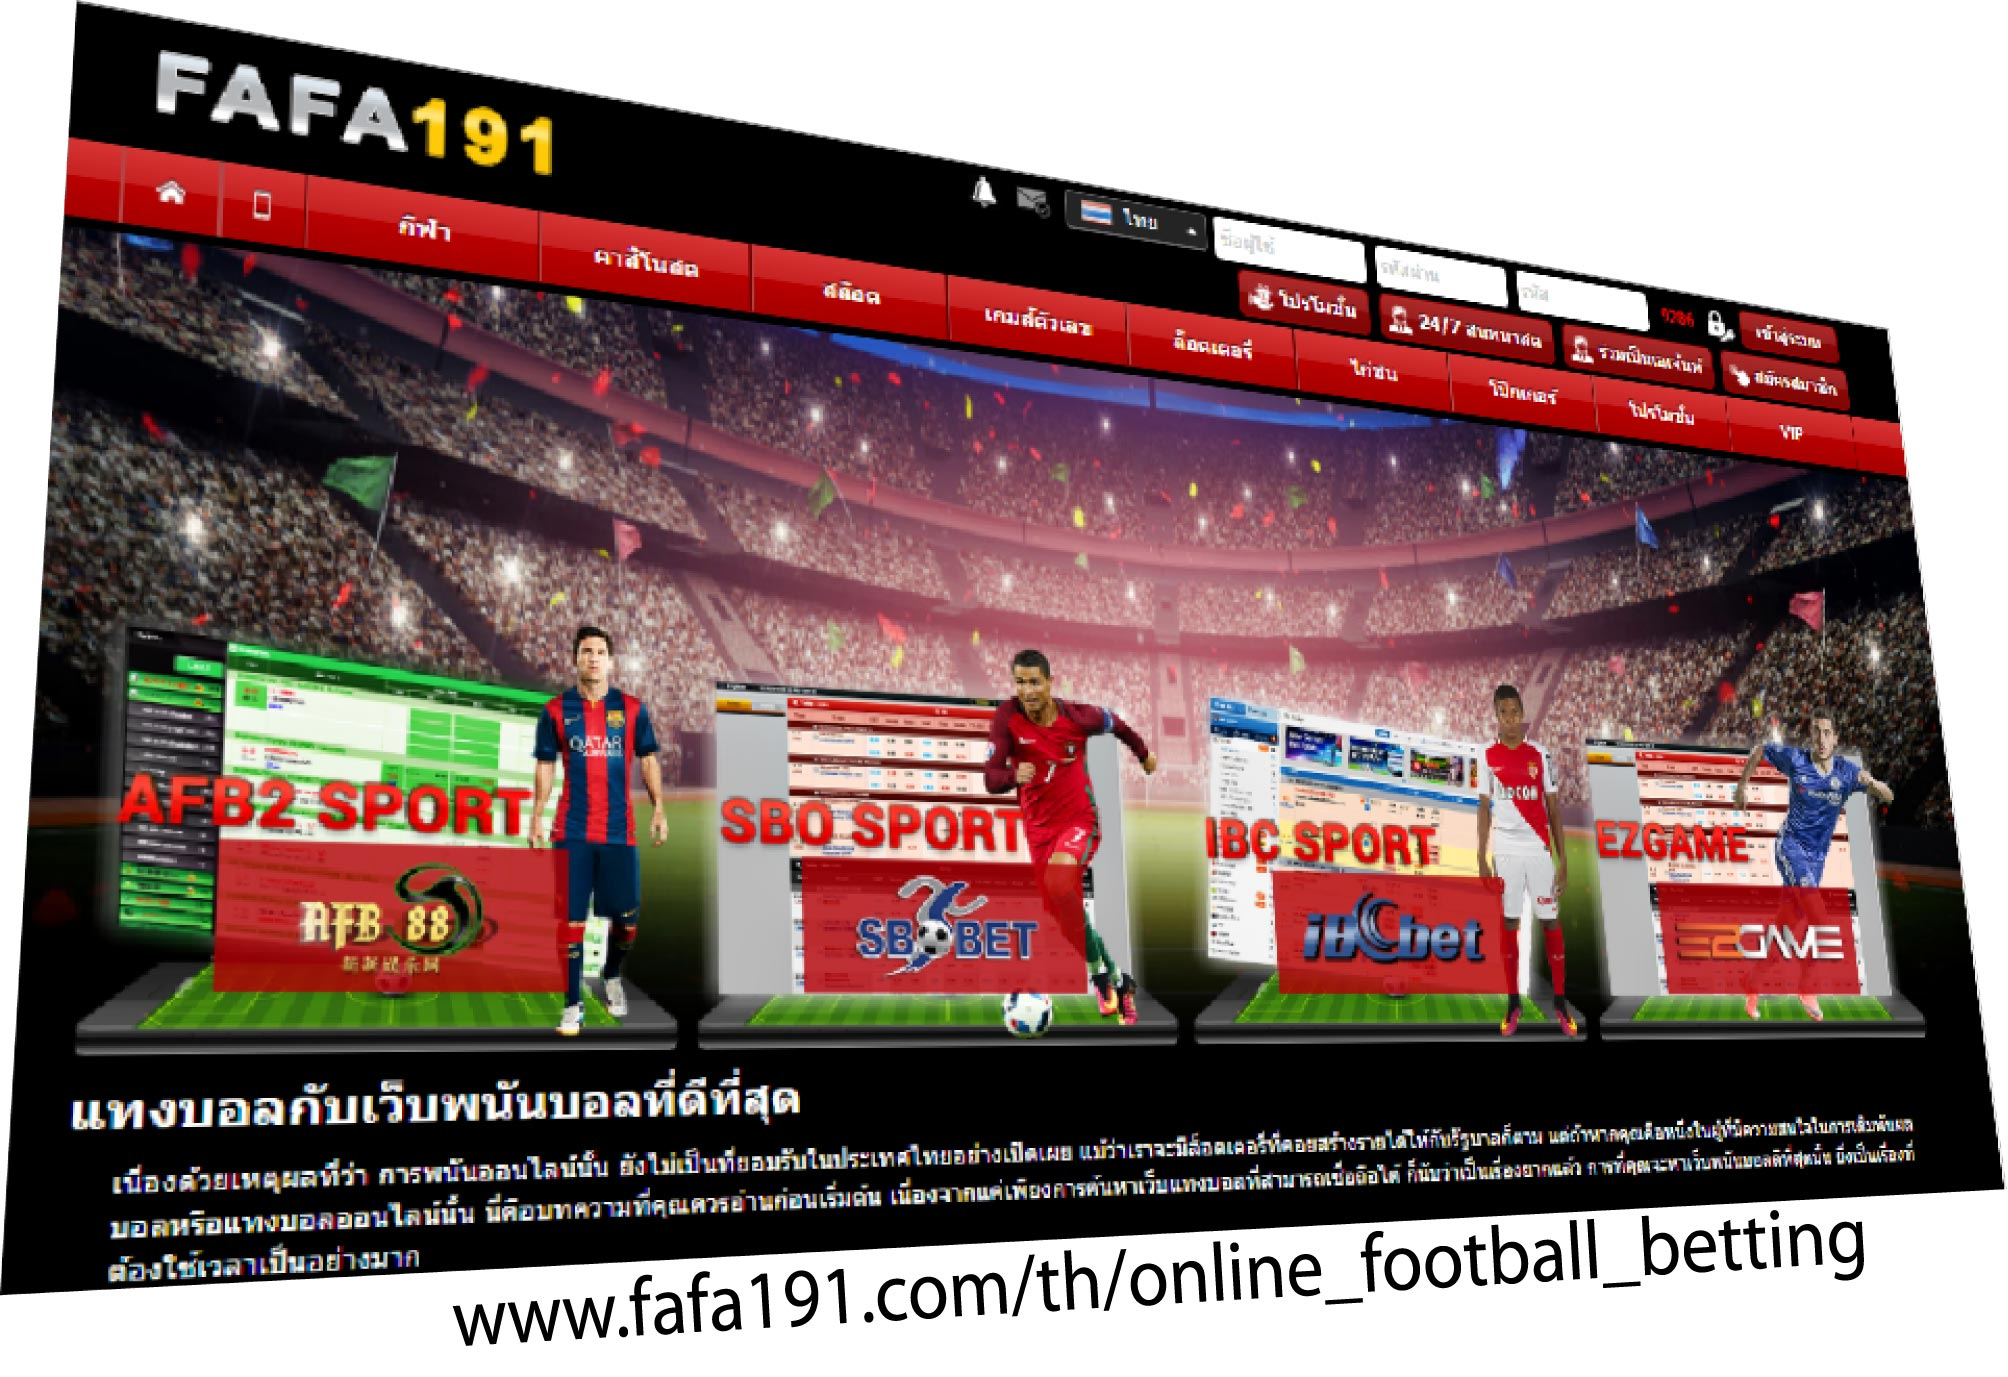 Play Online Football Betting at Fafa191